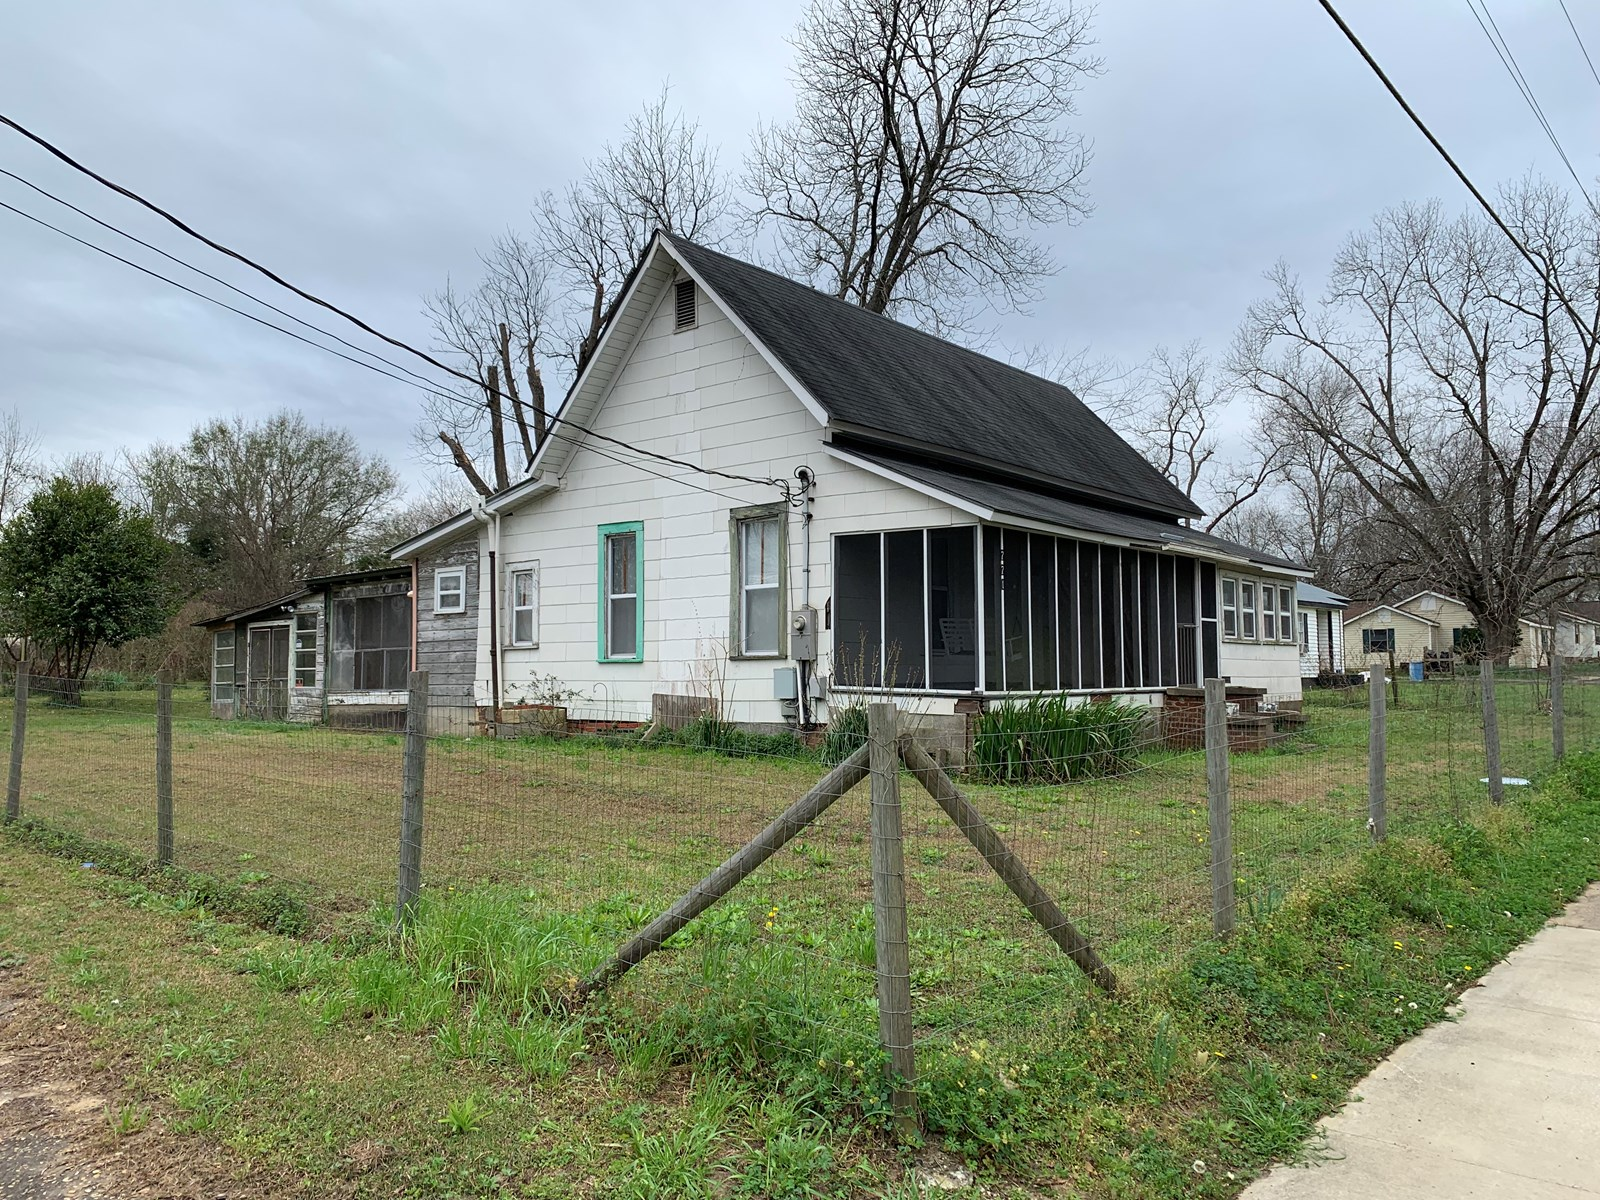 2B/2B OLDER HOME FOR SALE IN SLOCOMB, ALABAMA